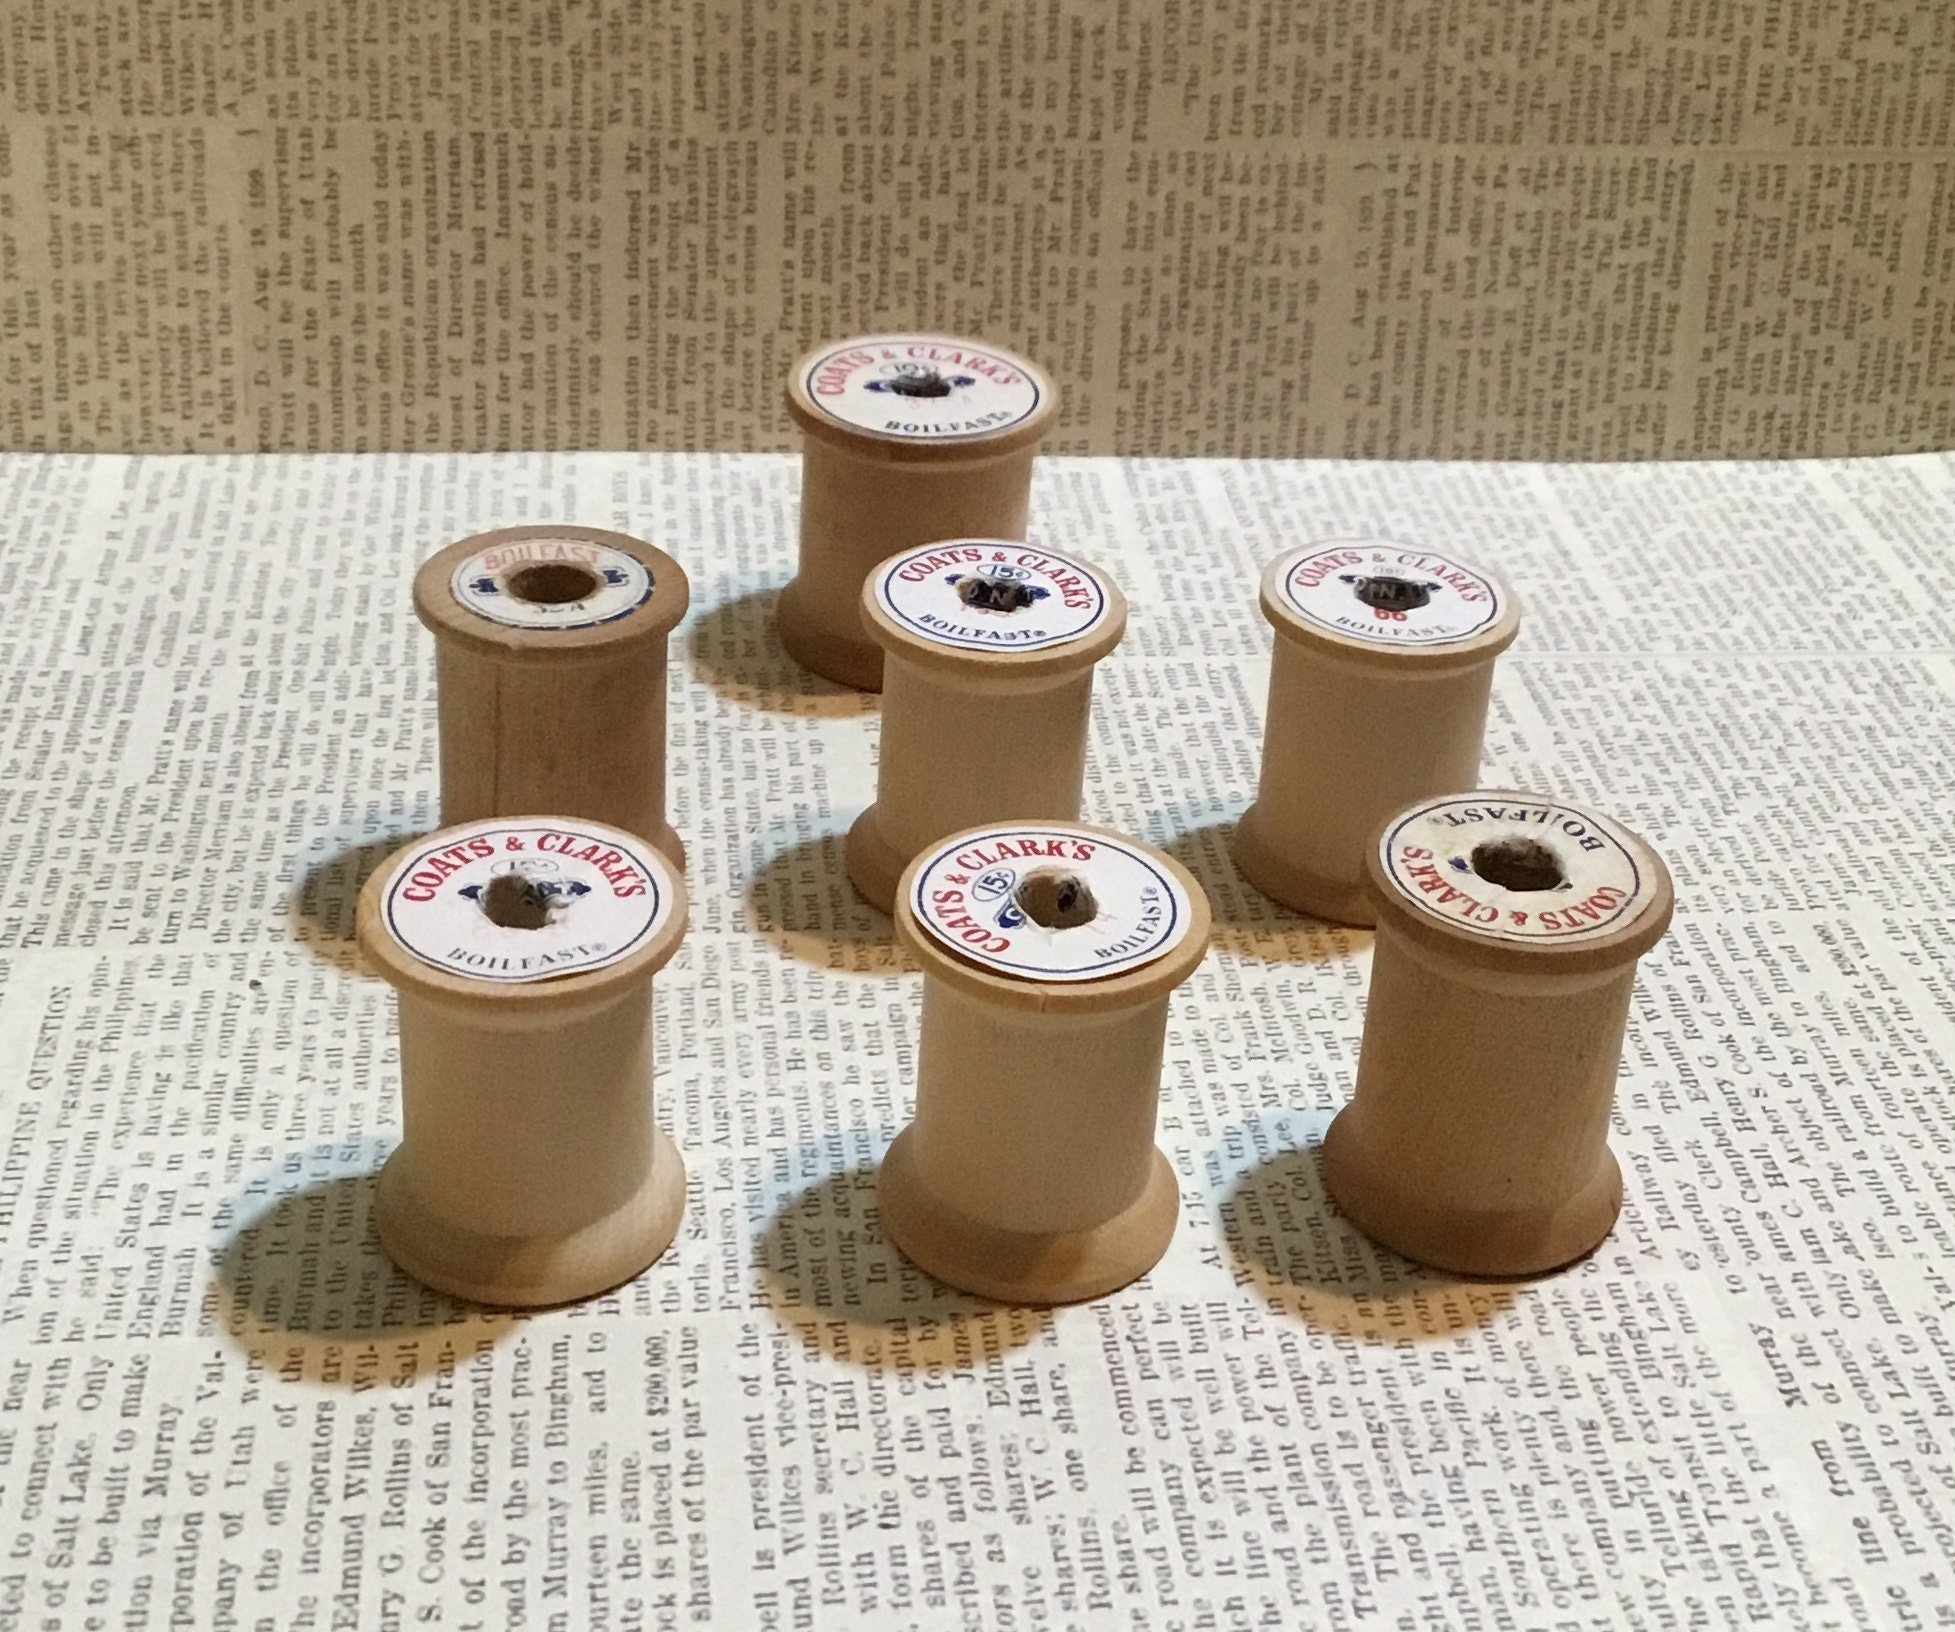 Vintage Coats And Clarks Wood Thread Spools Lot Of 7 Antique Crafting Collectibles Display Sewing